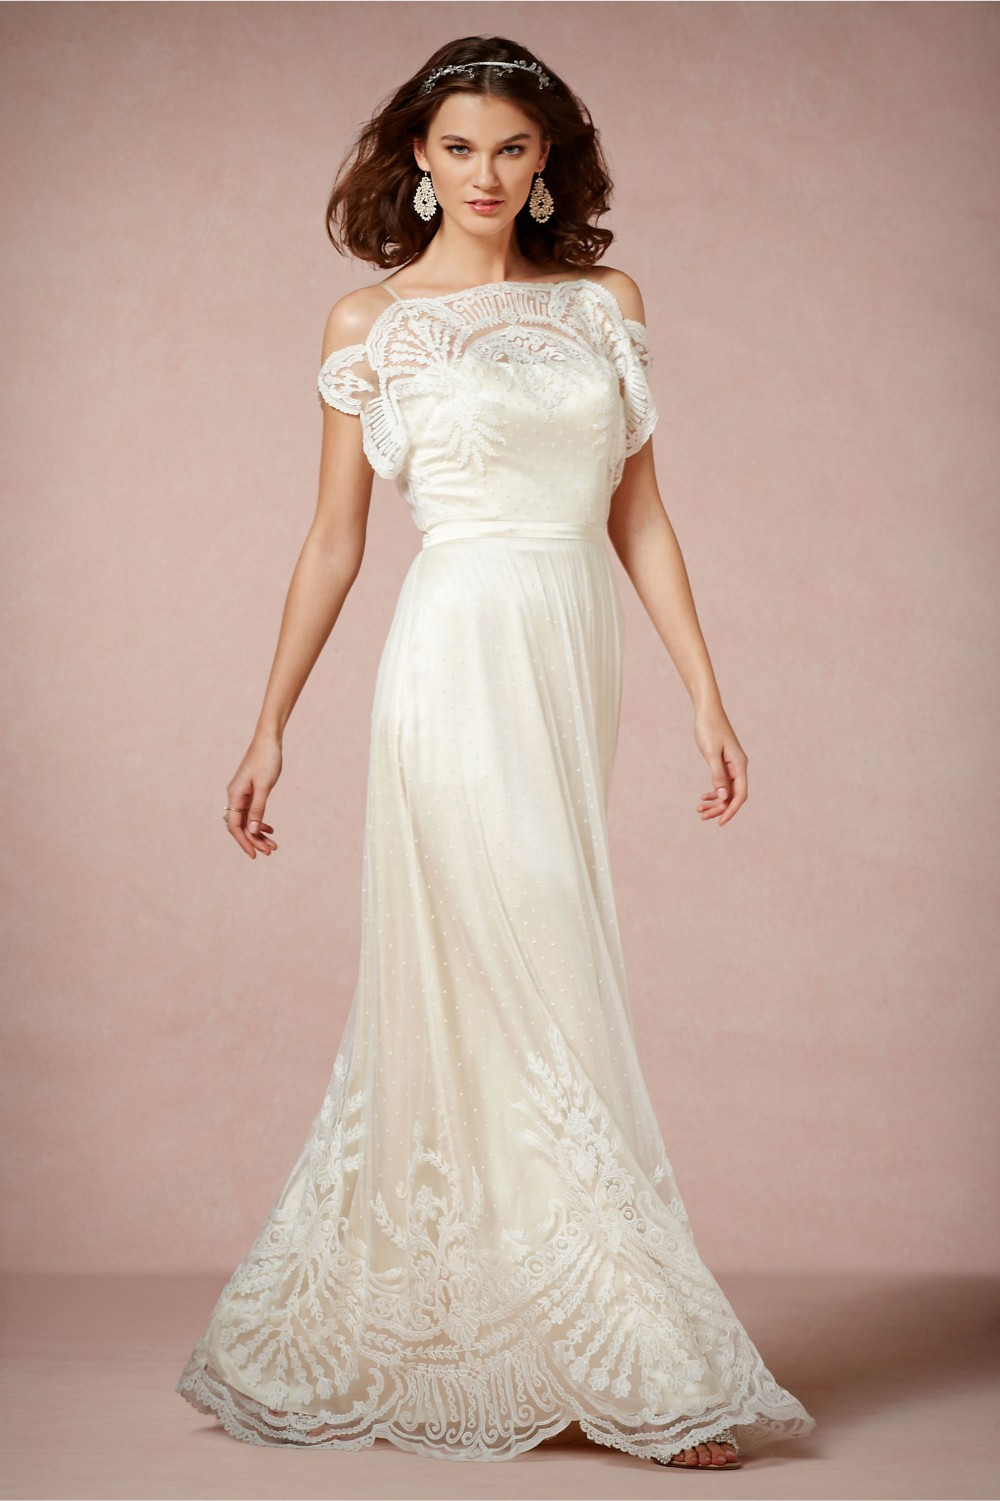 Catherine deane second hand wedding dress on sale 37 off for Second hand wedding dresses for sale